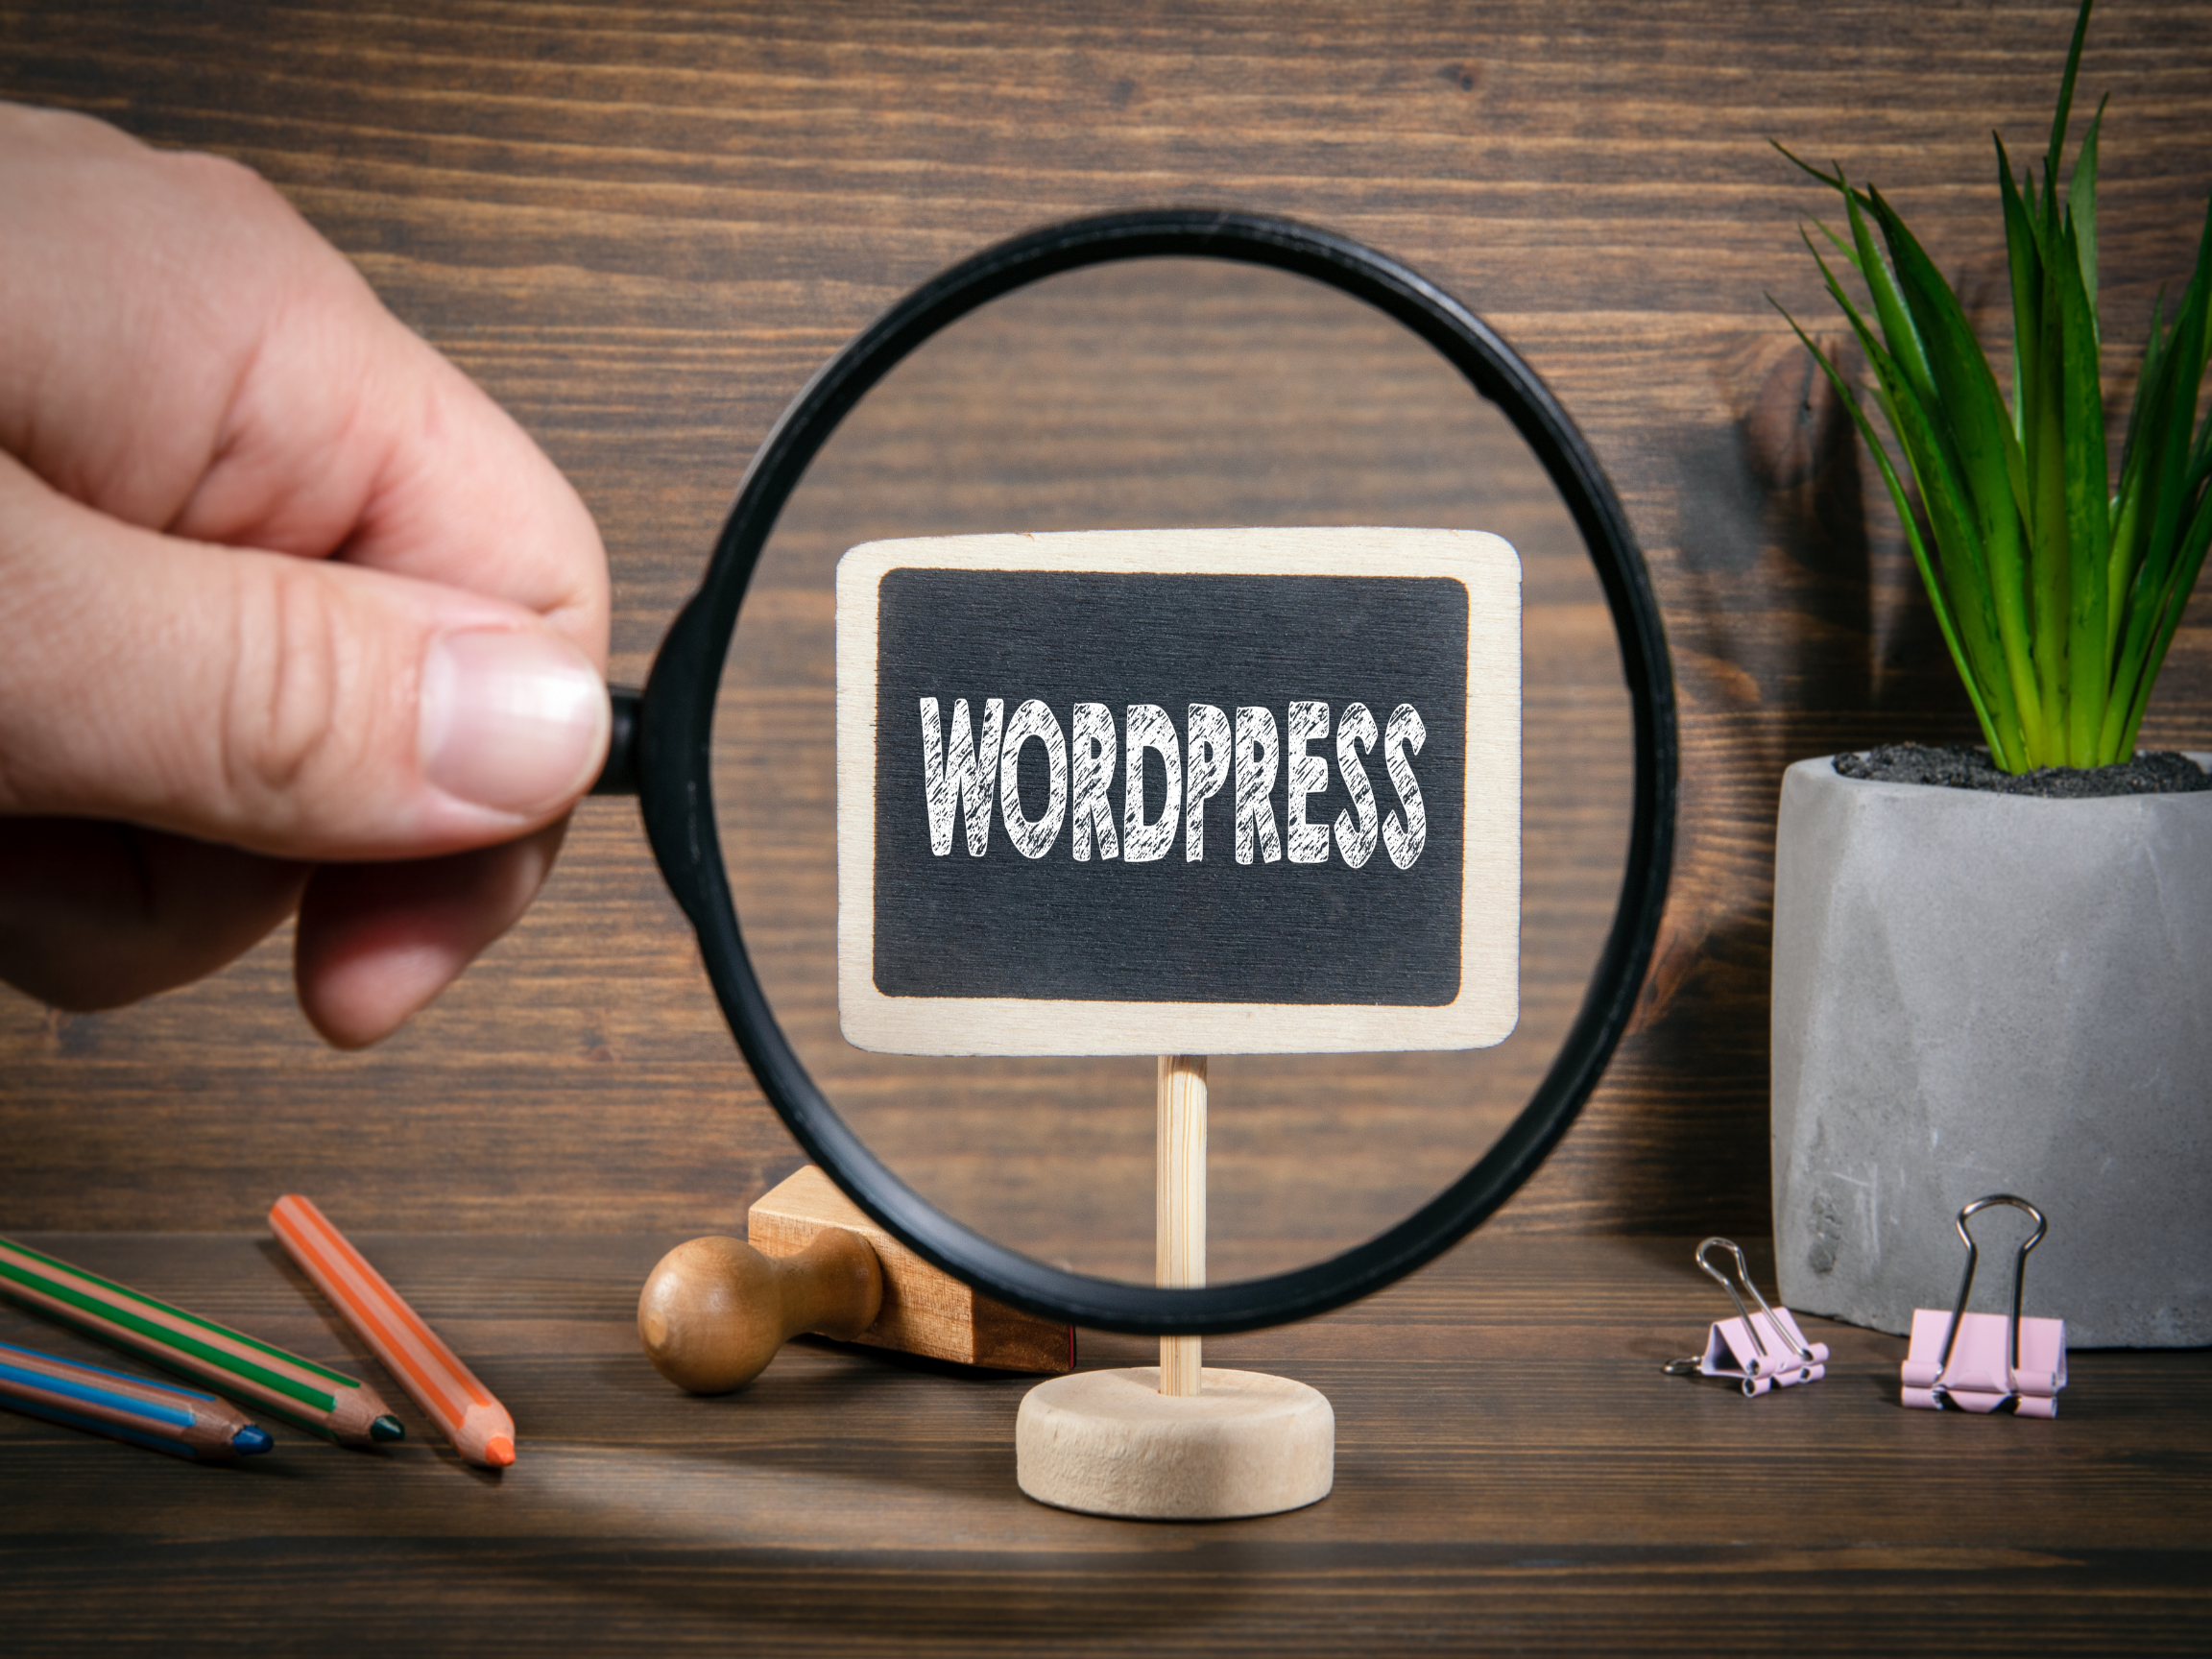 Wordpress Website Development In just 7 Days